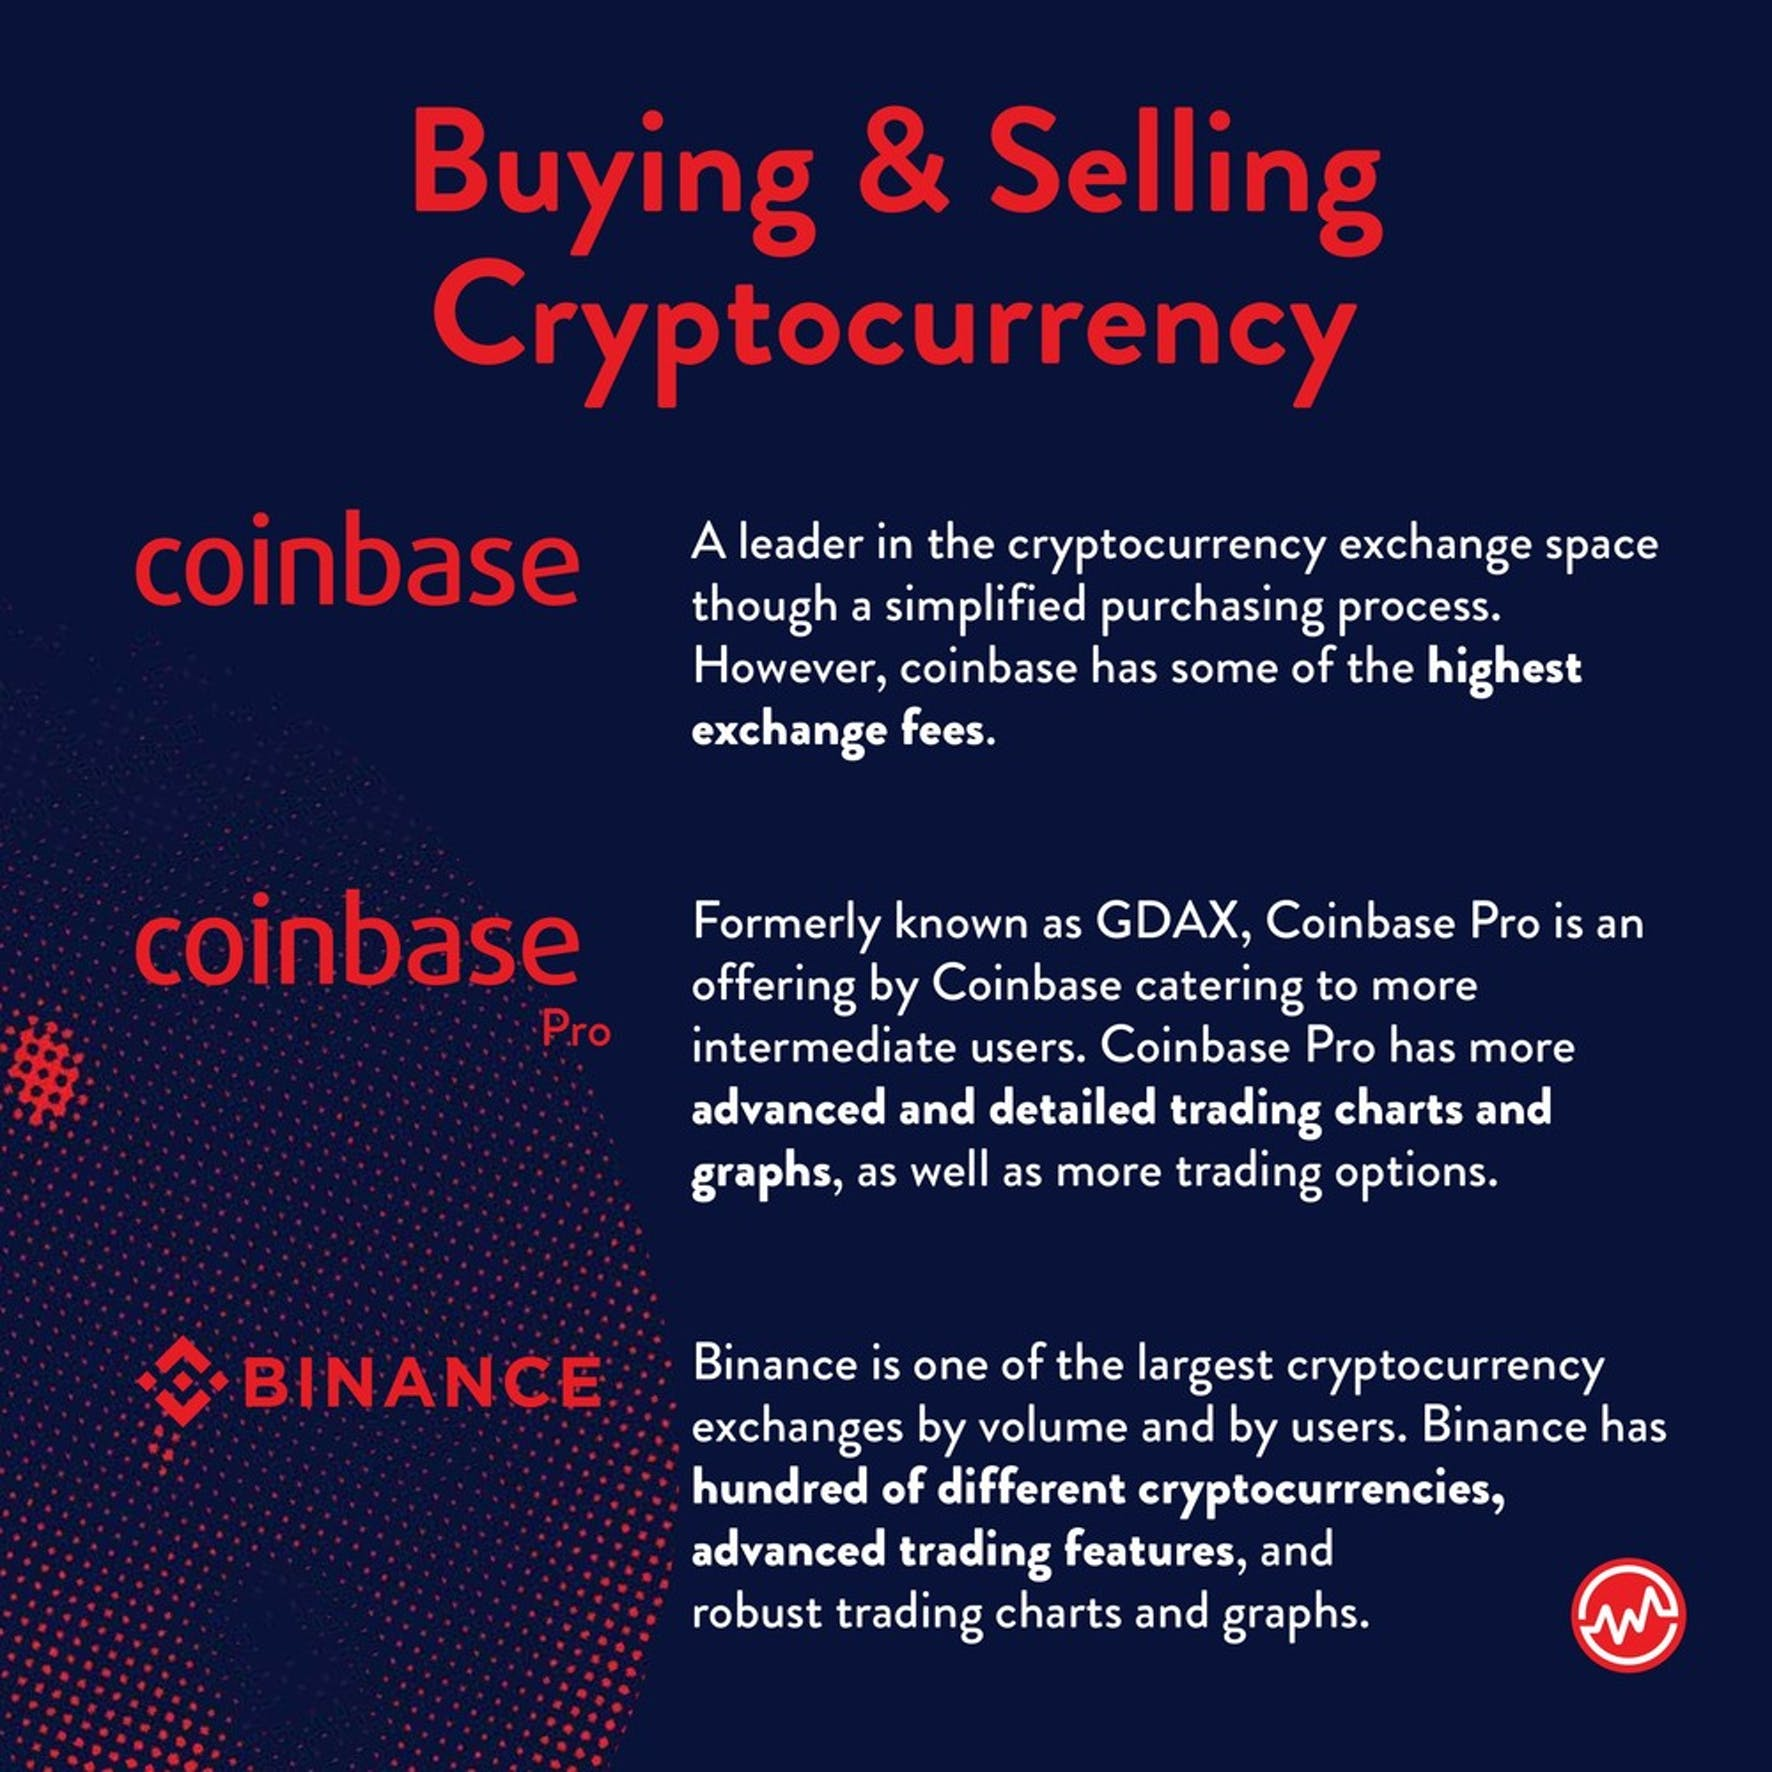 How to Buy and Sell Cryptocurrency through Coinbase, Coinbase Pro and Binance